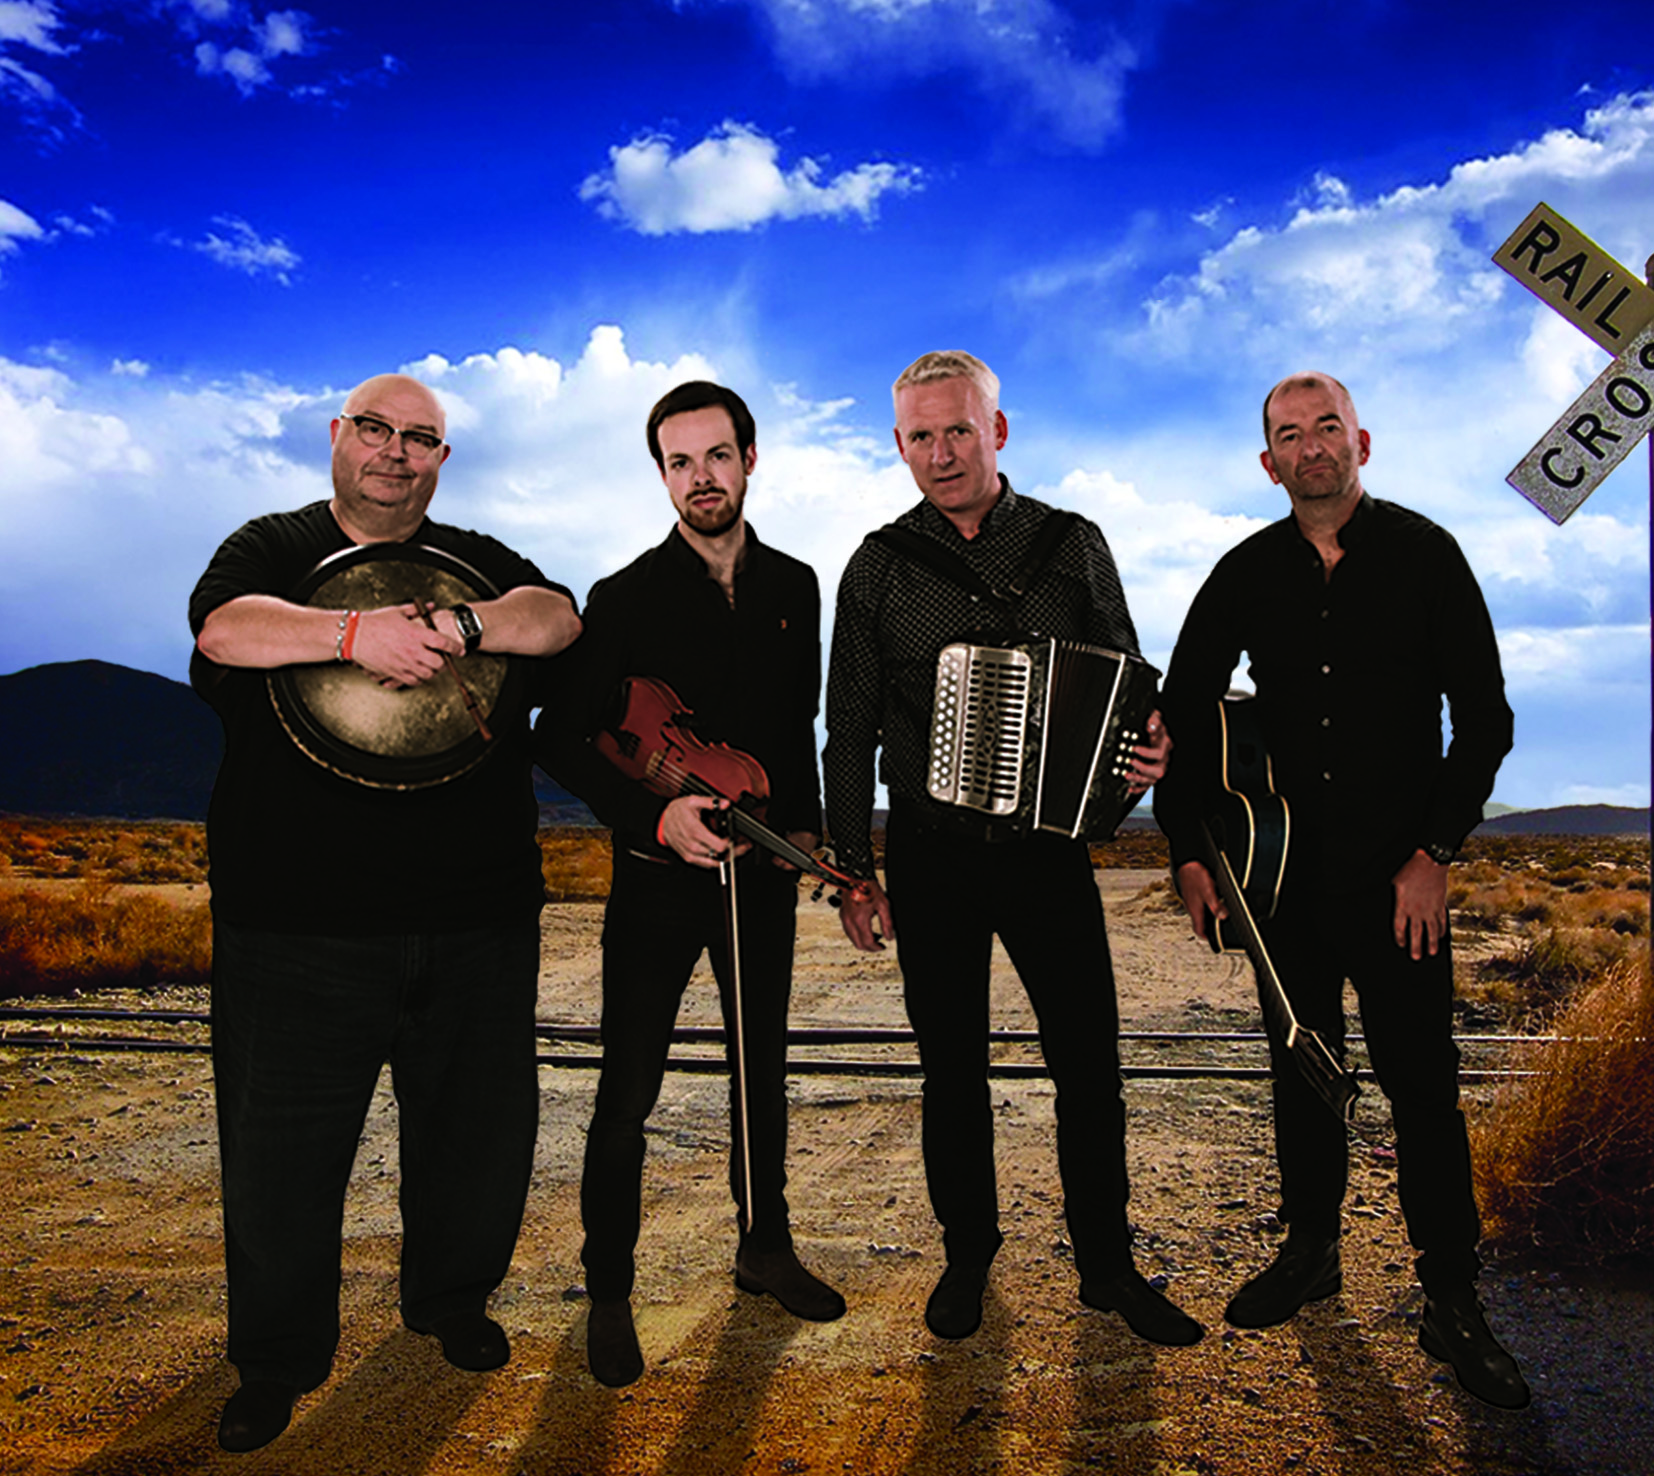 Breaking Trad is comprised of Gino Lupari, Donal Murphy, Niall Murphy and Mike Galvin.